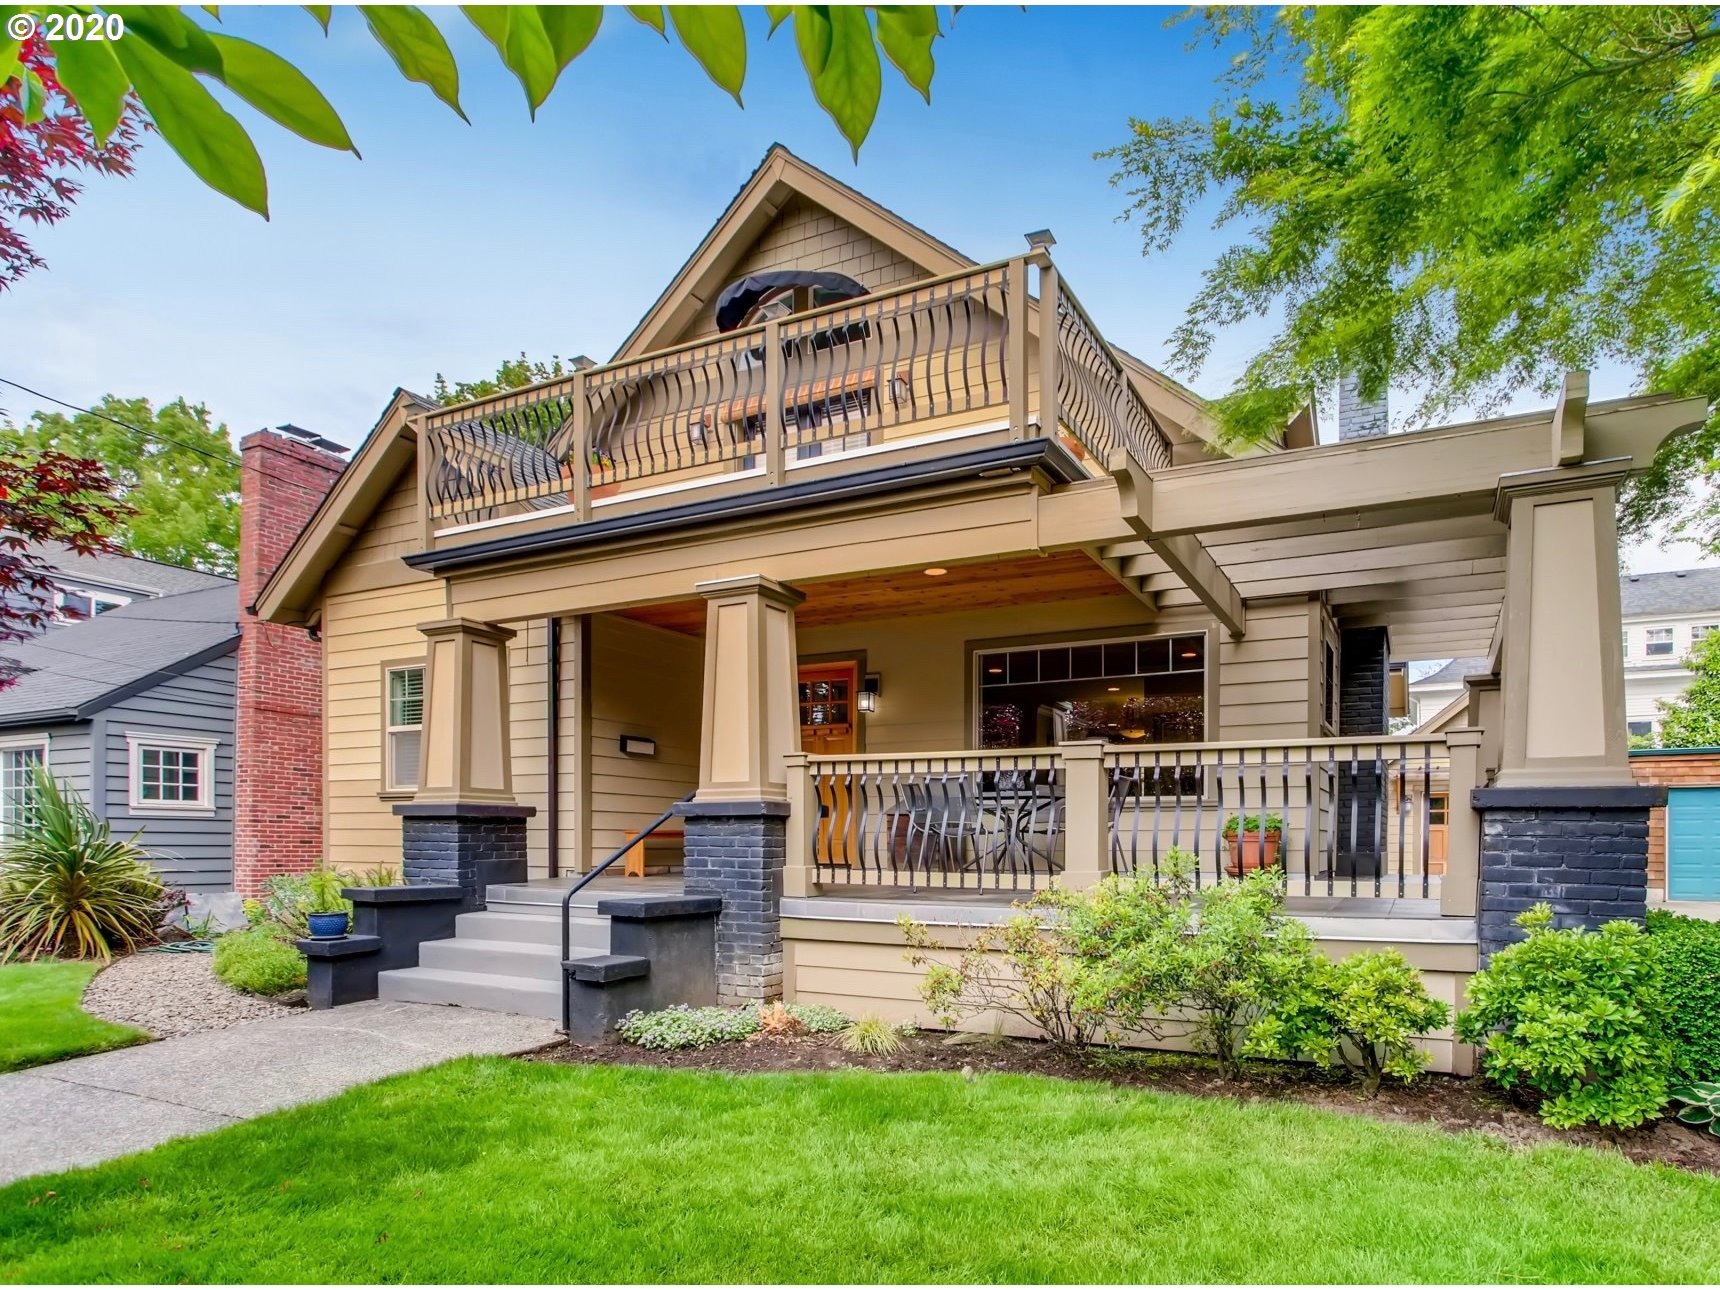 Gorgeous Craftsman Bungalow w/large, wrap-around porch in sought-after Eastmoreland. Extensively remodeled in 2006 w/updated open floorpan, systems (most) & quality finishes w/period charm. Enviable, private master suite w/vaulted ceiling, sitting room, huge walk-in closet, dreamy bath & French doors to expansive balcony. 2 roomy main flr BRs-1 w/walk-in closet. Lower 4BR en suite may or may not be conforming (now a FR). Beautiful wood floors grace 2 floors. Near Golf & playground. [Home Energy Score = 5. HES Report at https://rpt.greenbuildingregistry.com/hes/OR10183853]